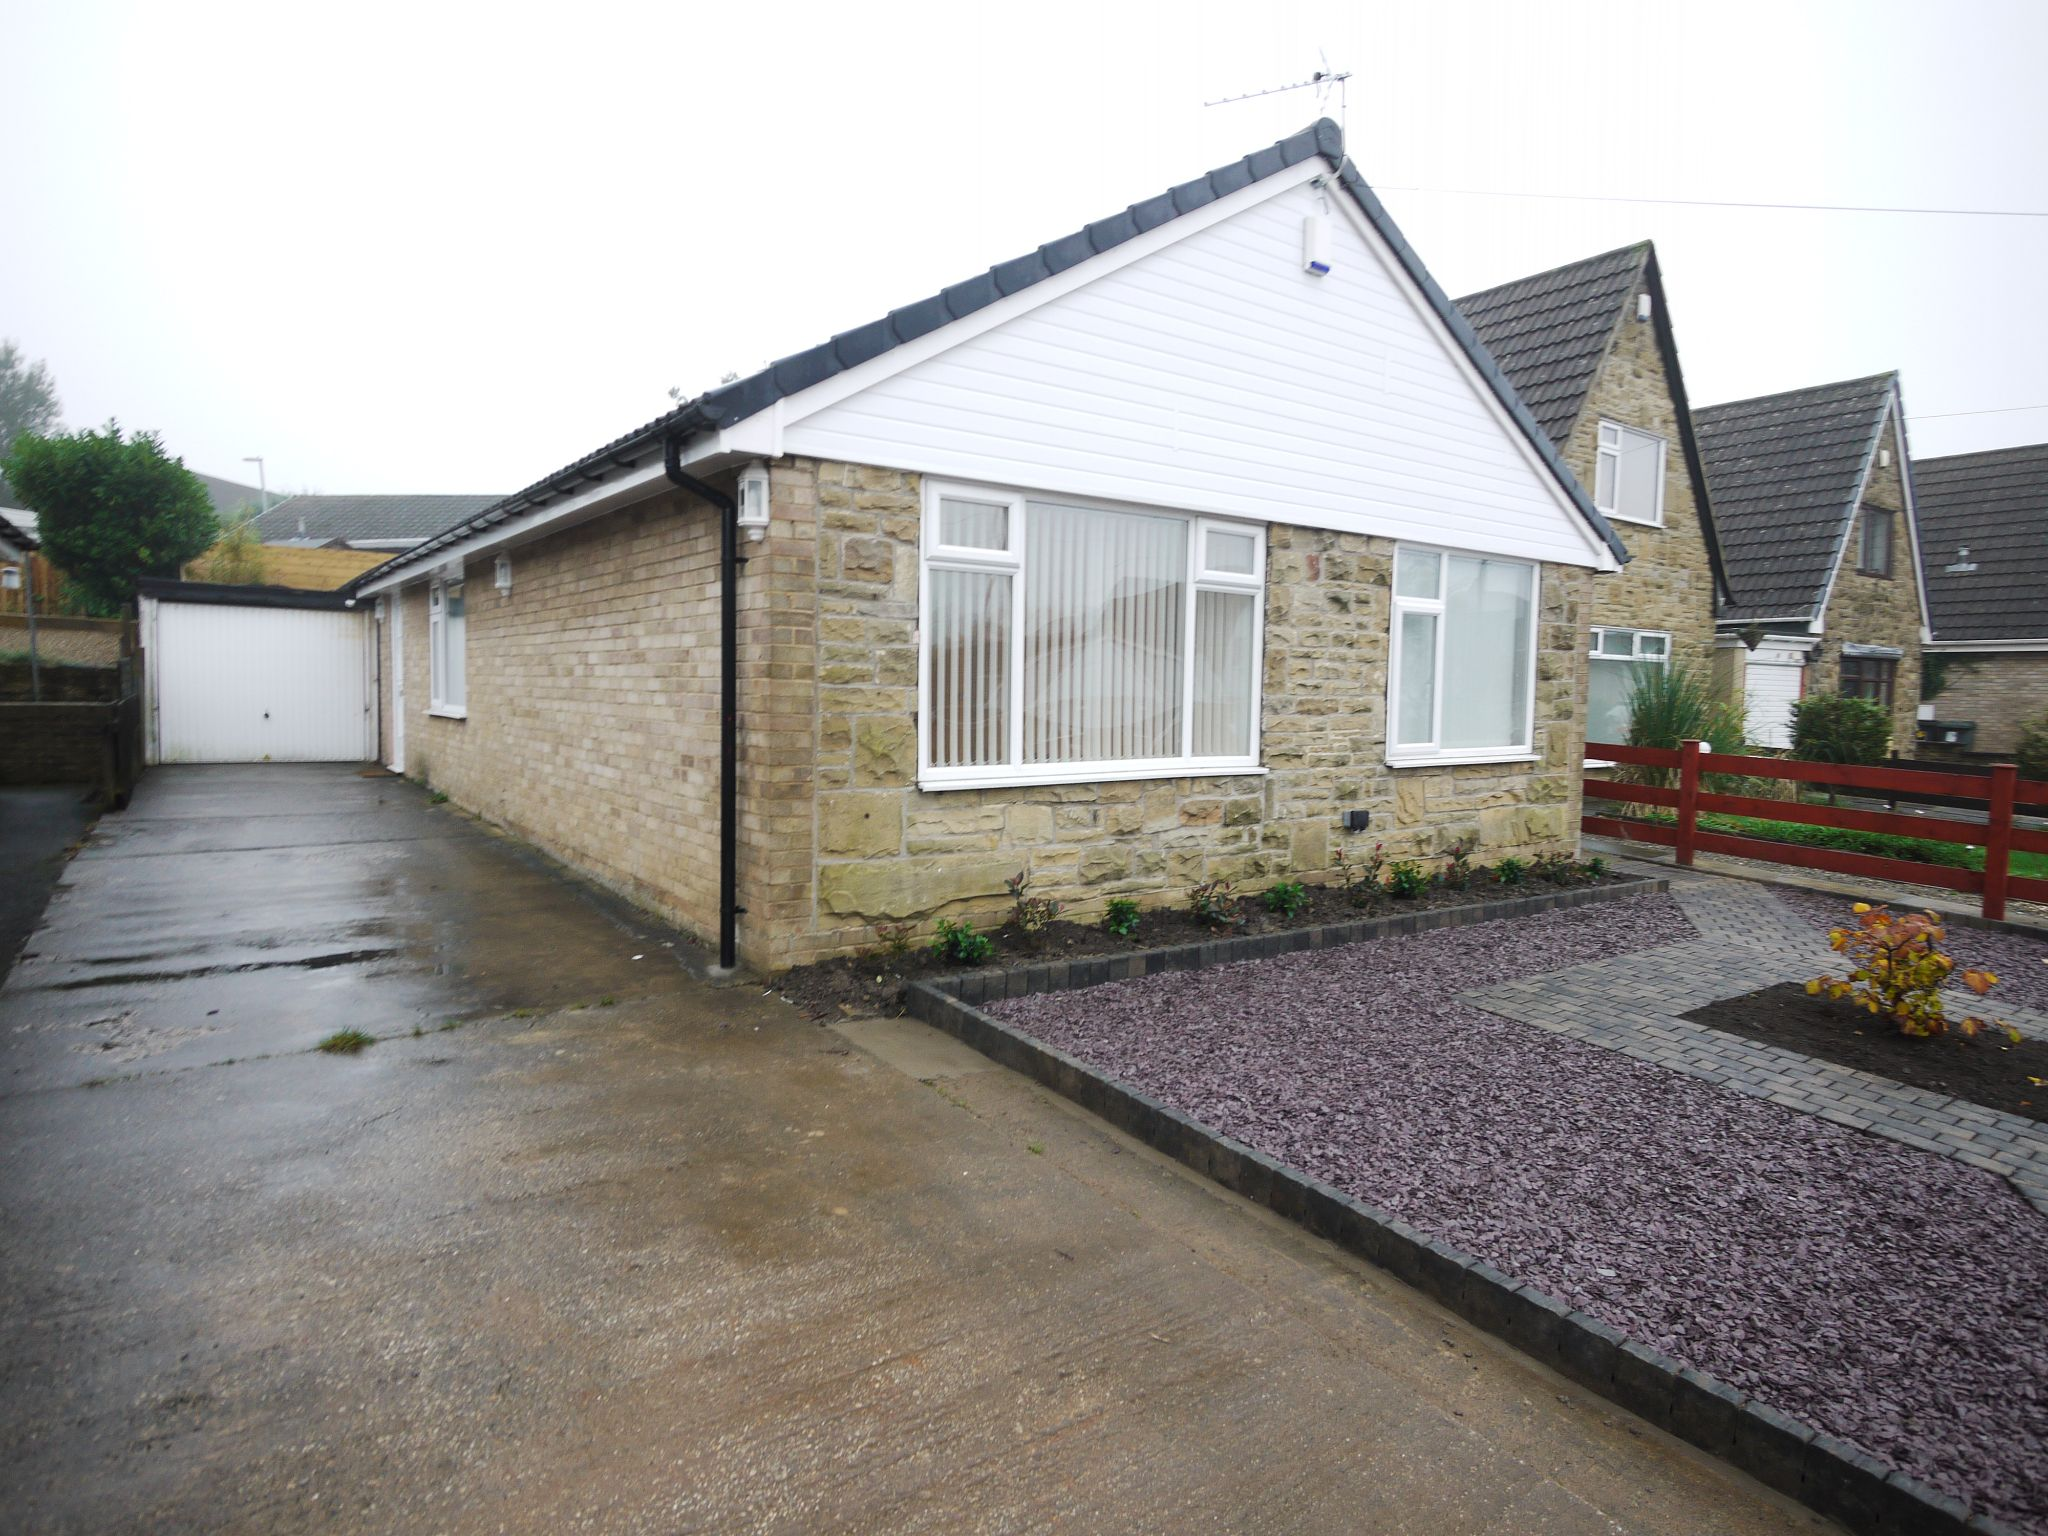 3 bedroom detached bungalow To Let in Bradford - Property photograph.